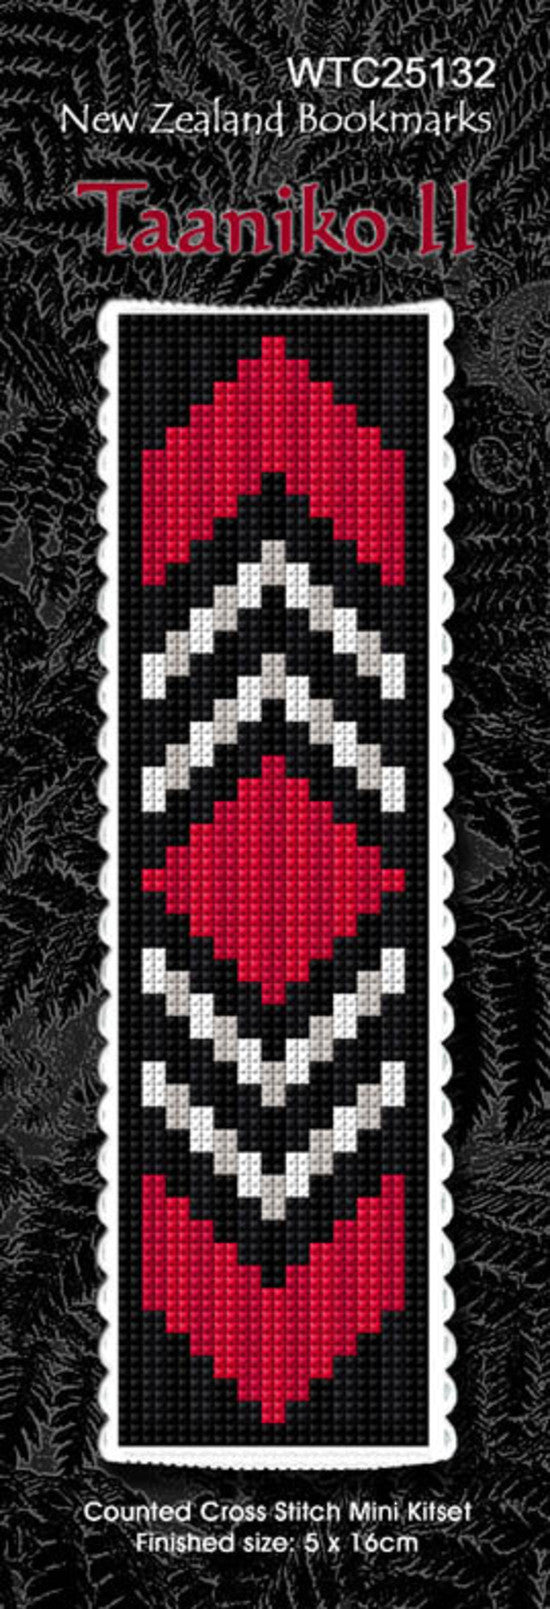 Cross-stitch bookmark - Taaniko 2